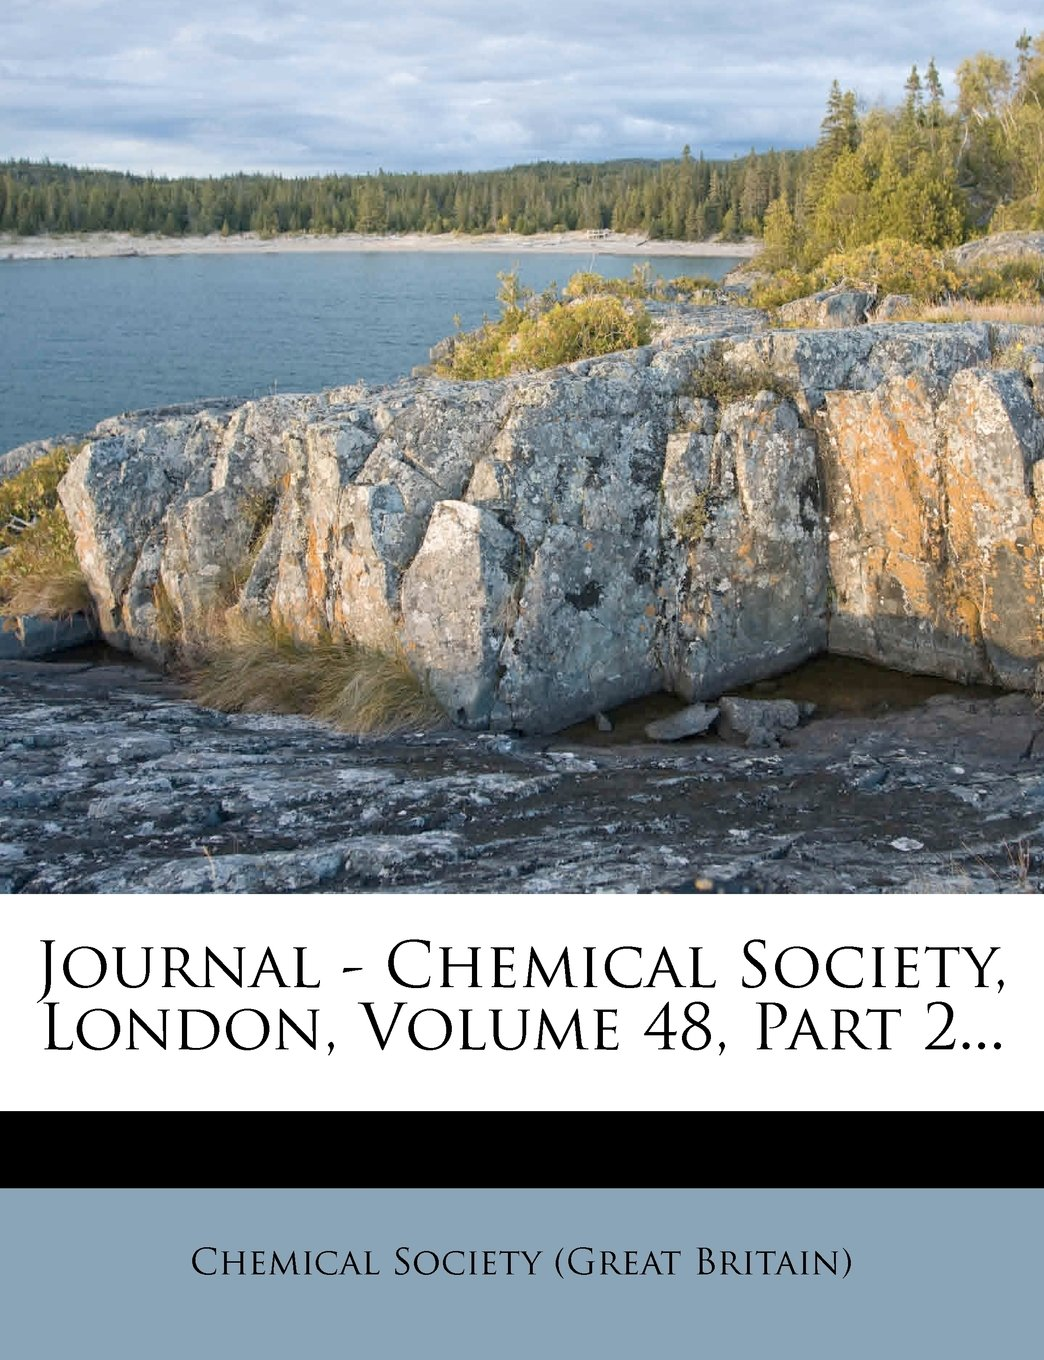 Download Journal - Chemical Society, London, Volume 48, Part 2... Text fb2 book